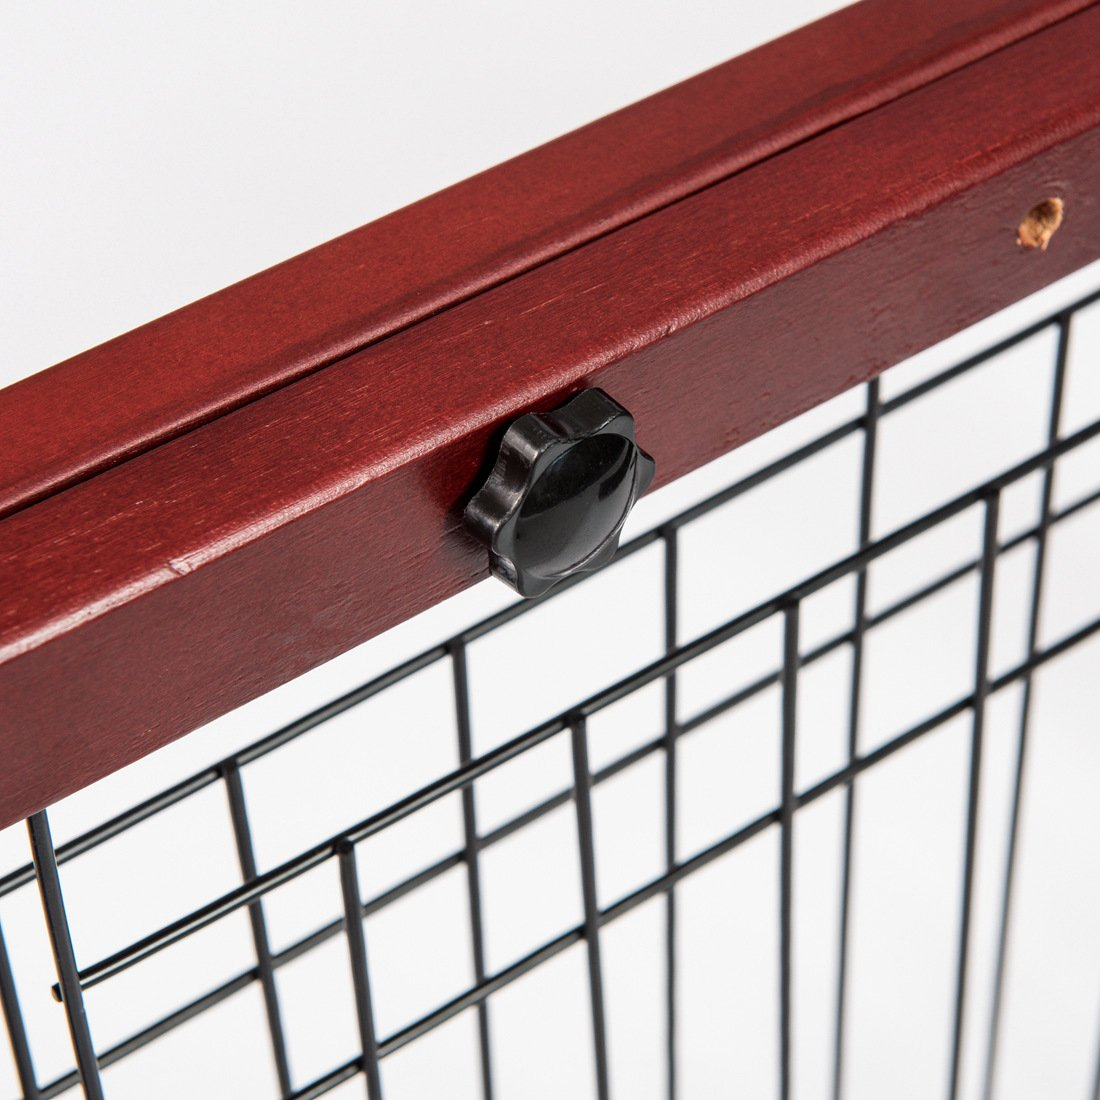 GOOD LIFE Wooden Fence Freestanding Pet Dog Gate Indoor Adjustable Gates for Home Coffee Color 72 Inch PET344 by GOOD LIFE USA (Image #6)